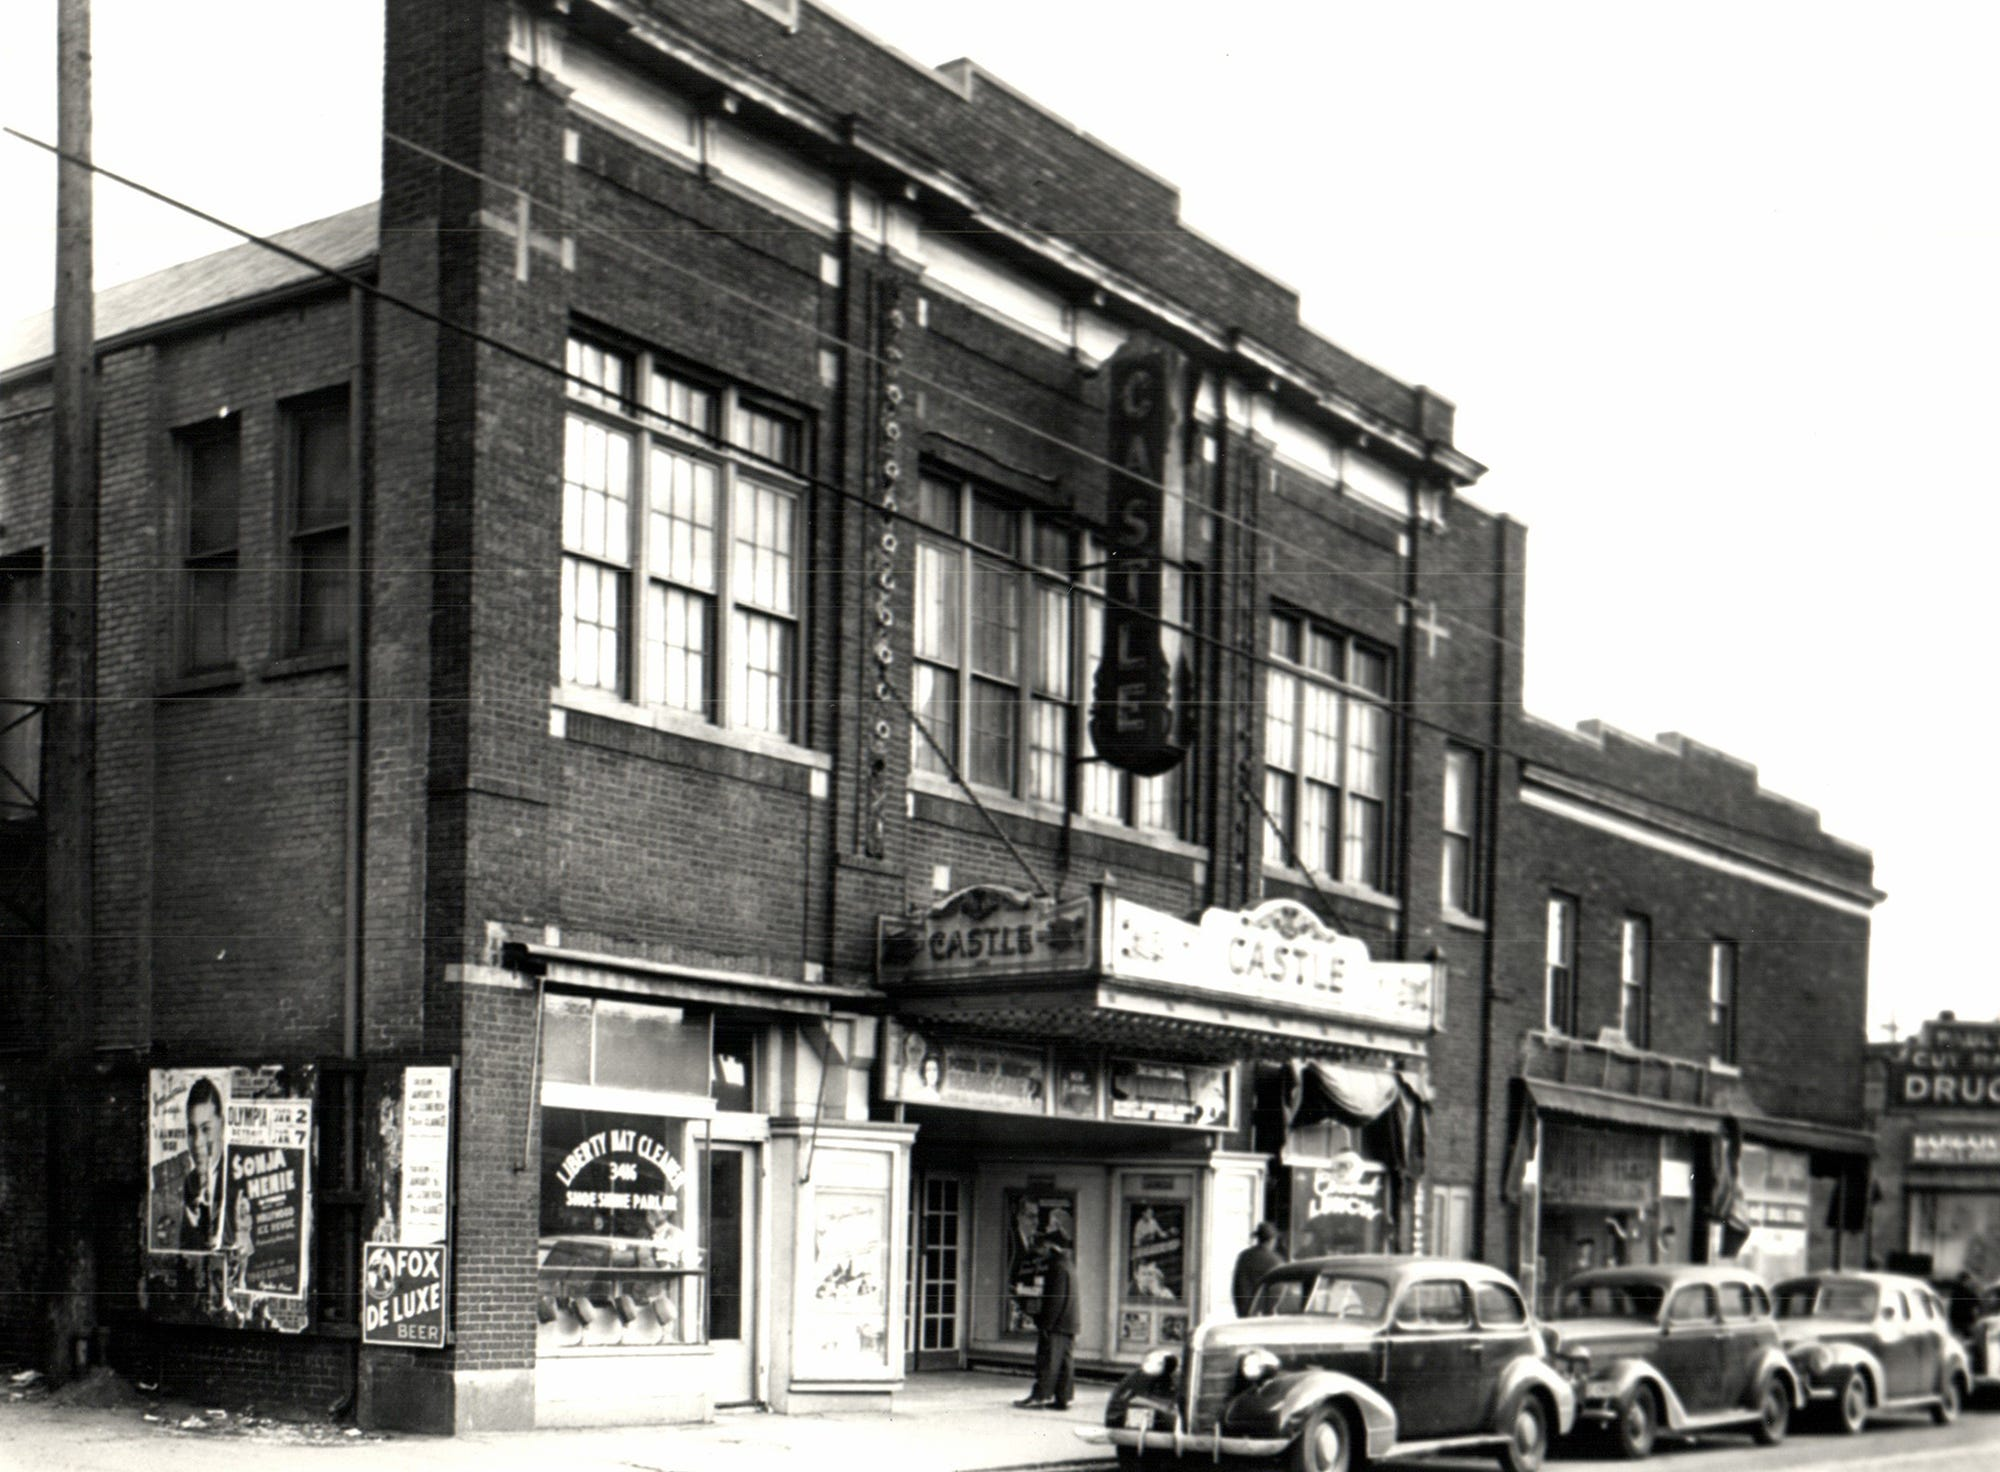 The Castle Theater in the Black Bottom section of Detroit, Michigan, the African-American section of town.